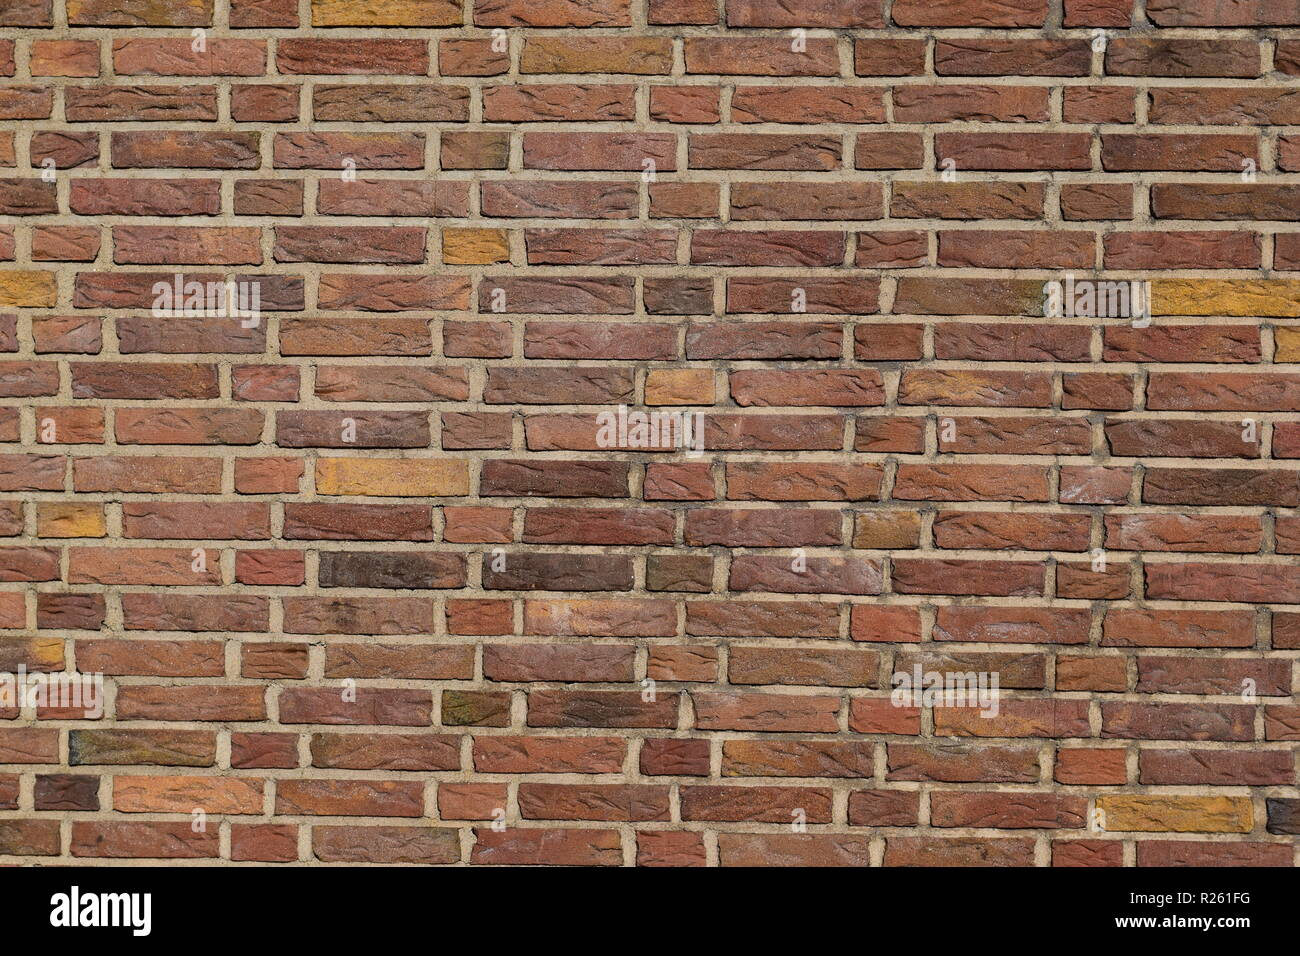 Old red brick wall showing signs of age and decay mortar. - Stock Image